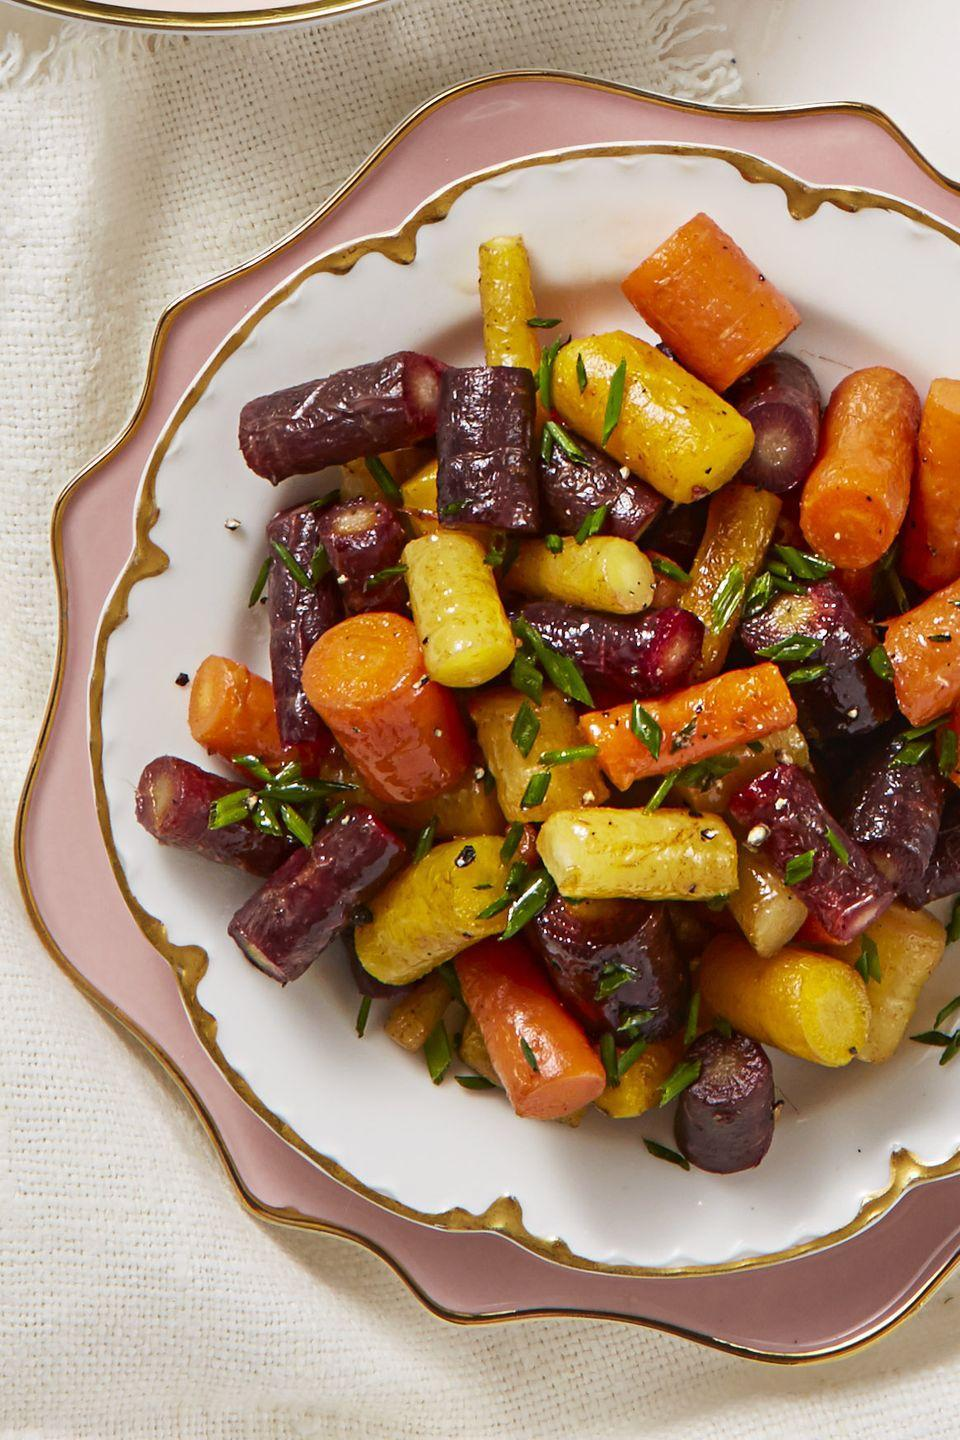 "<p>When in doubt, add butter (and a dash of chives). </p><p><em><a href=""https://www.goodhousekeeping.com/food-recipes/a43670/butter-glazed-rainbow-carrots-recipe/"" rel=""nofollow noopener"" target=""_blank"" data-ylk=""slk:Get the recipe for Butter-Glazed Rainbow Carrots »"" class=""link rapid-noclick-resp"">Get the recipe for Butter-Glazed Rainbow Carrots »</a></em></p>"